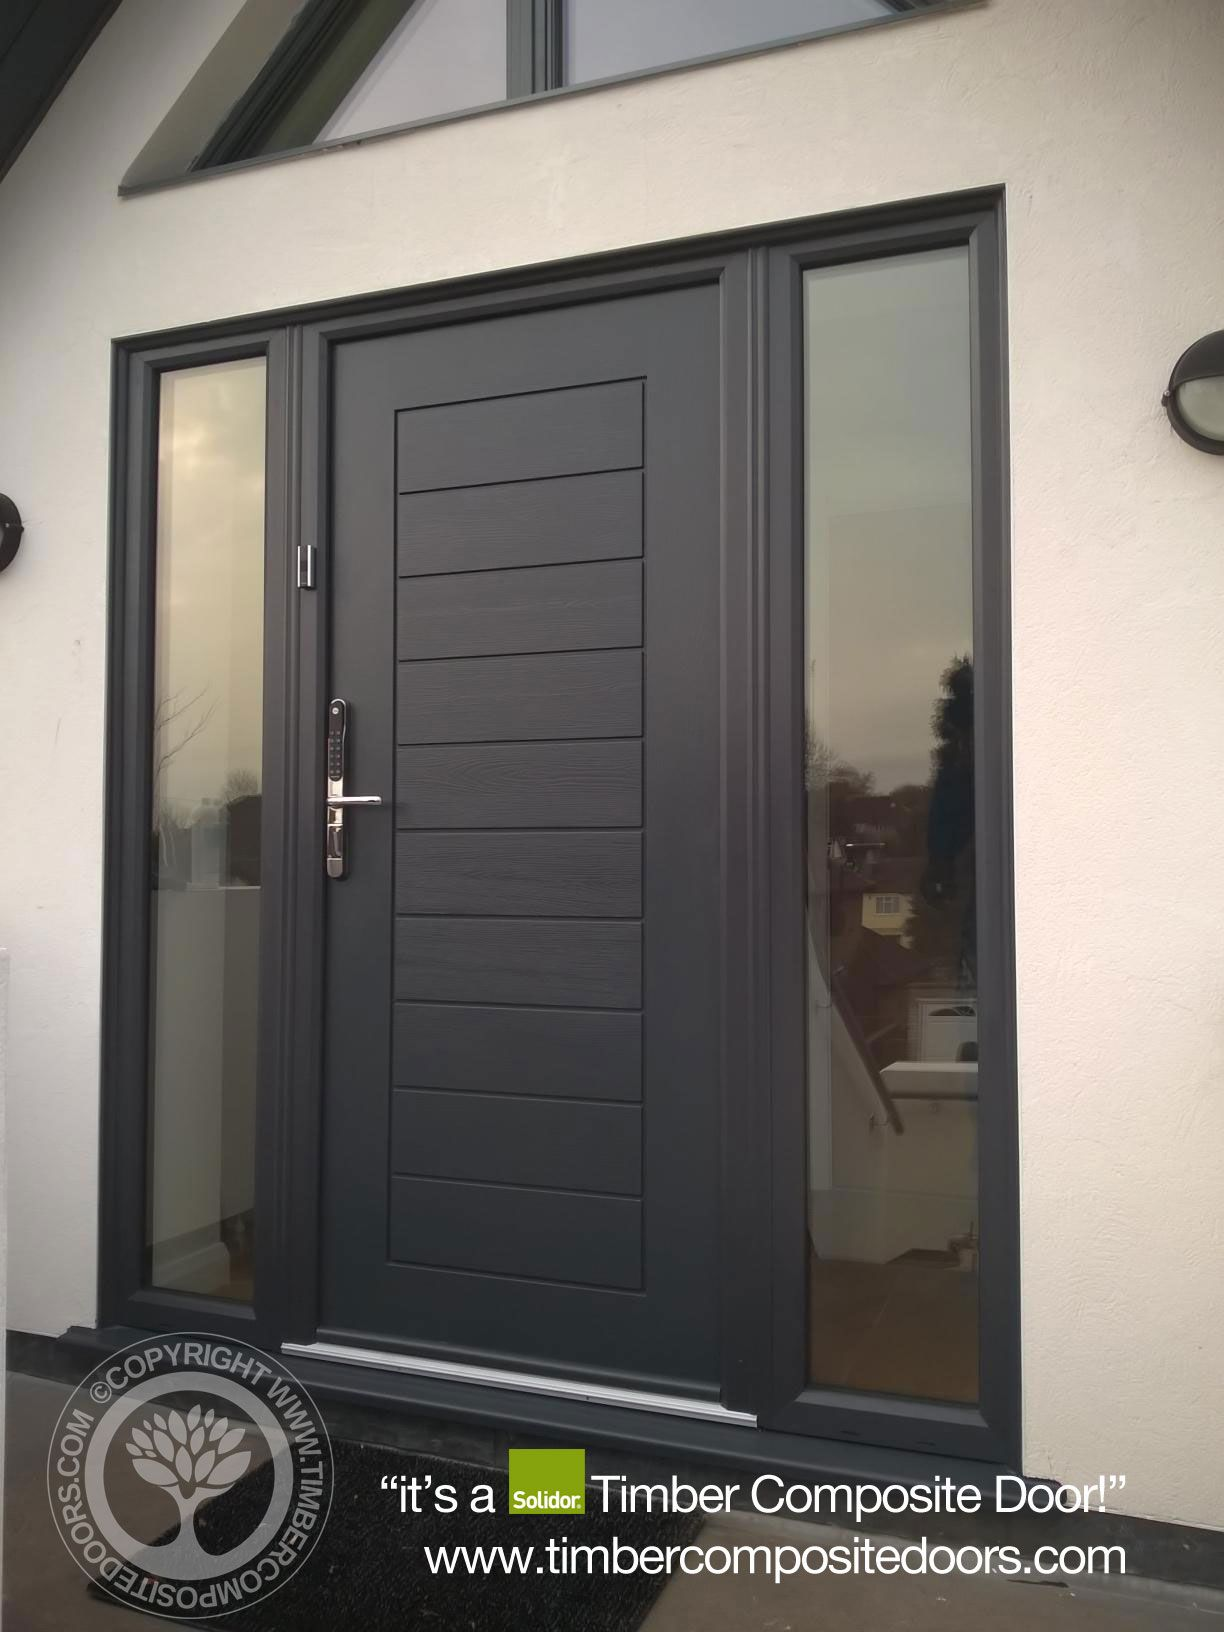 Anthracite Grey Solidor Timber Composite Doors 12 Months